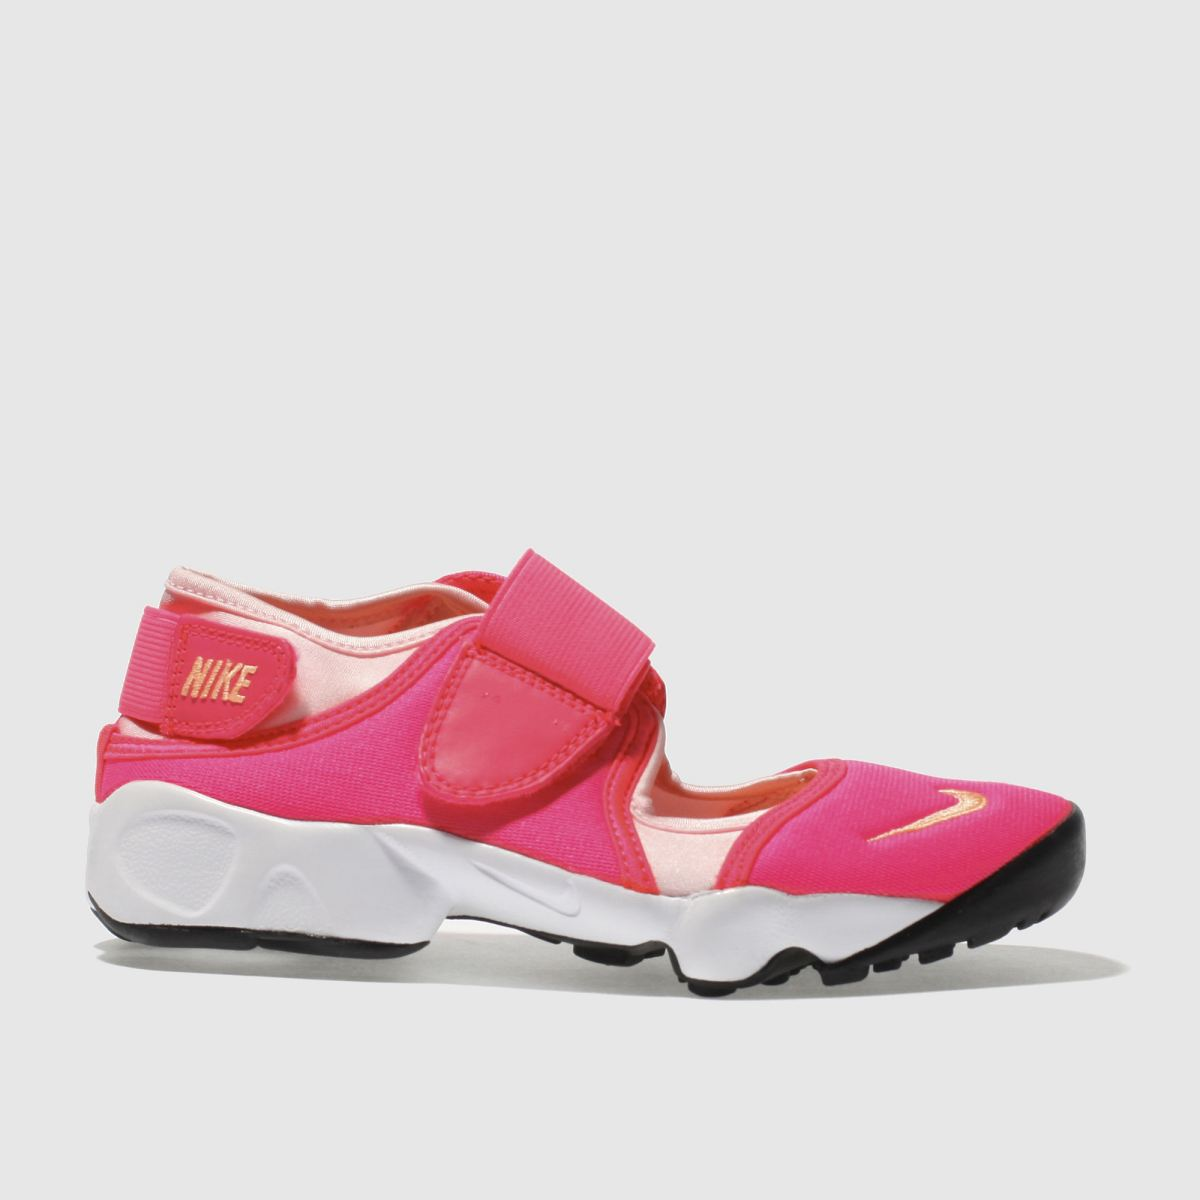 nike pink rift Girls Junior Trainers